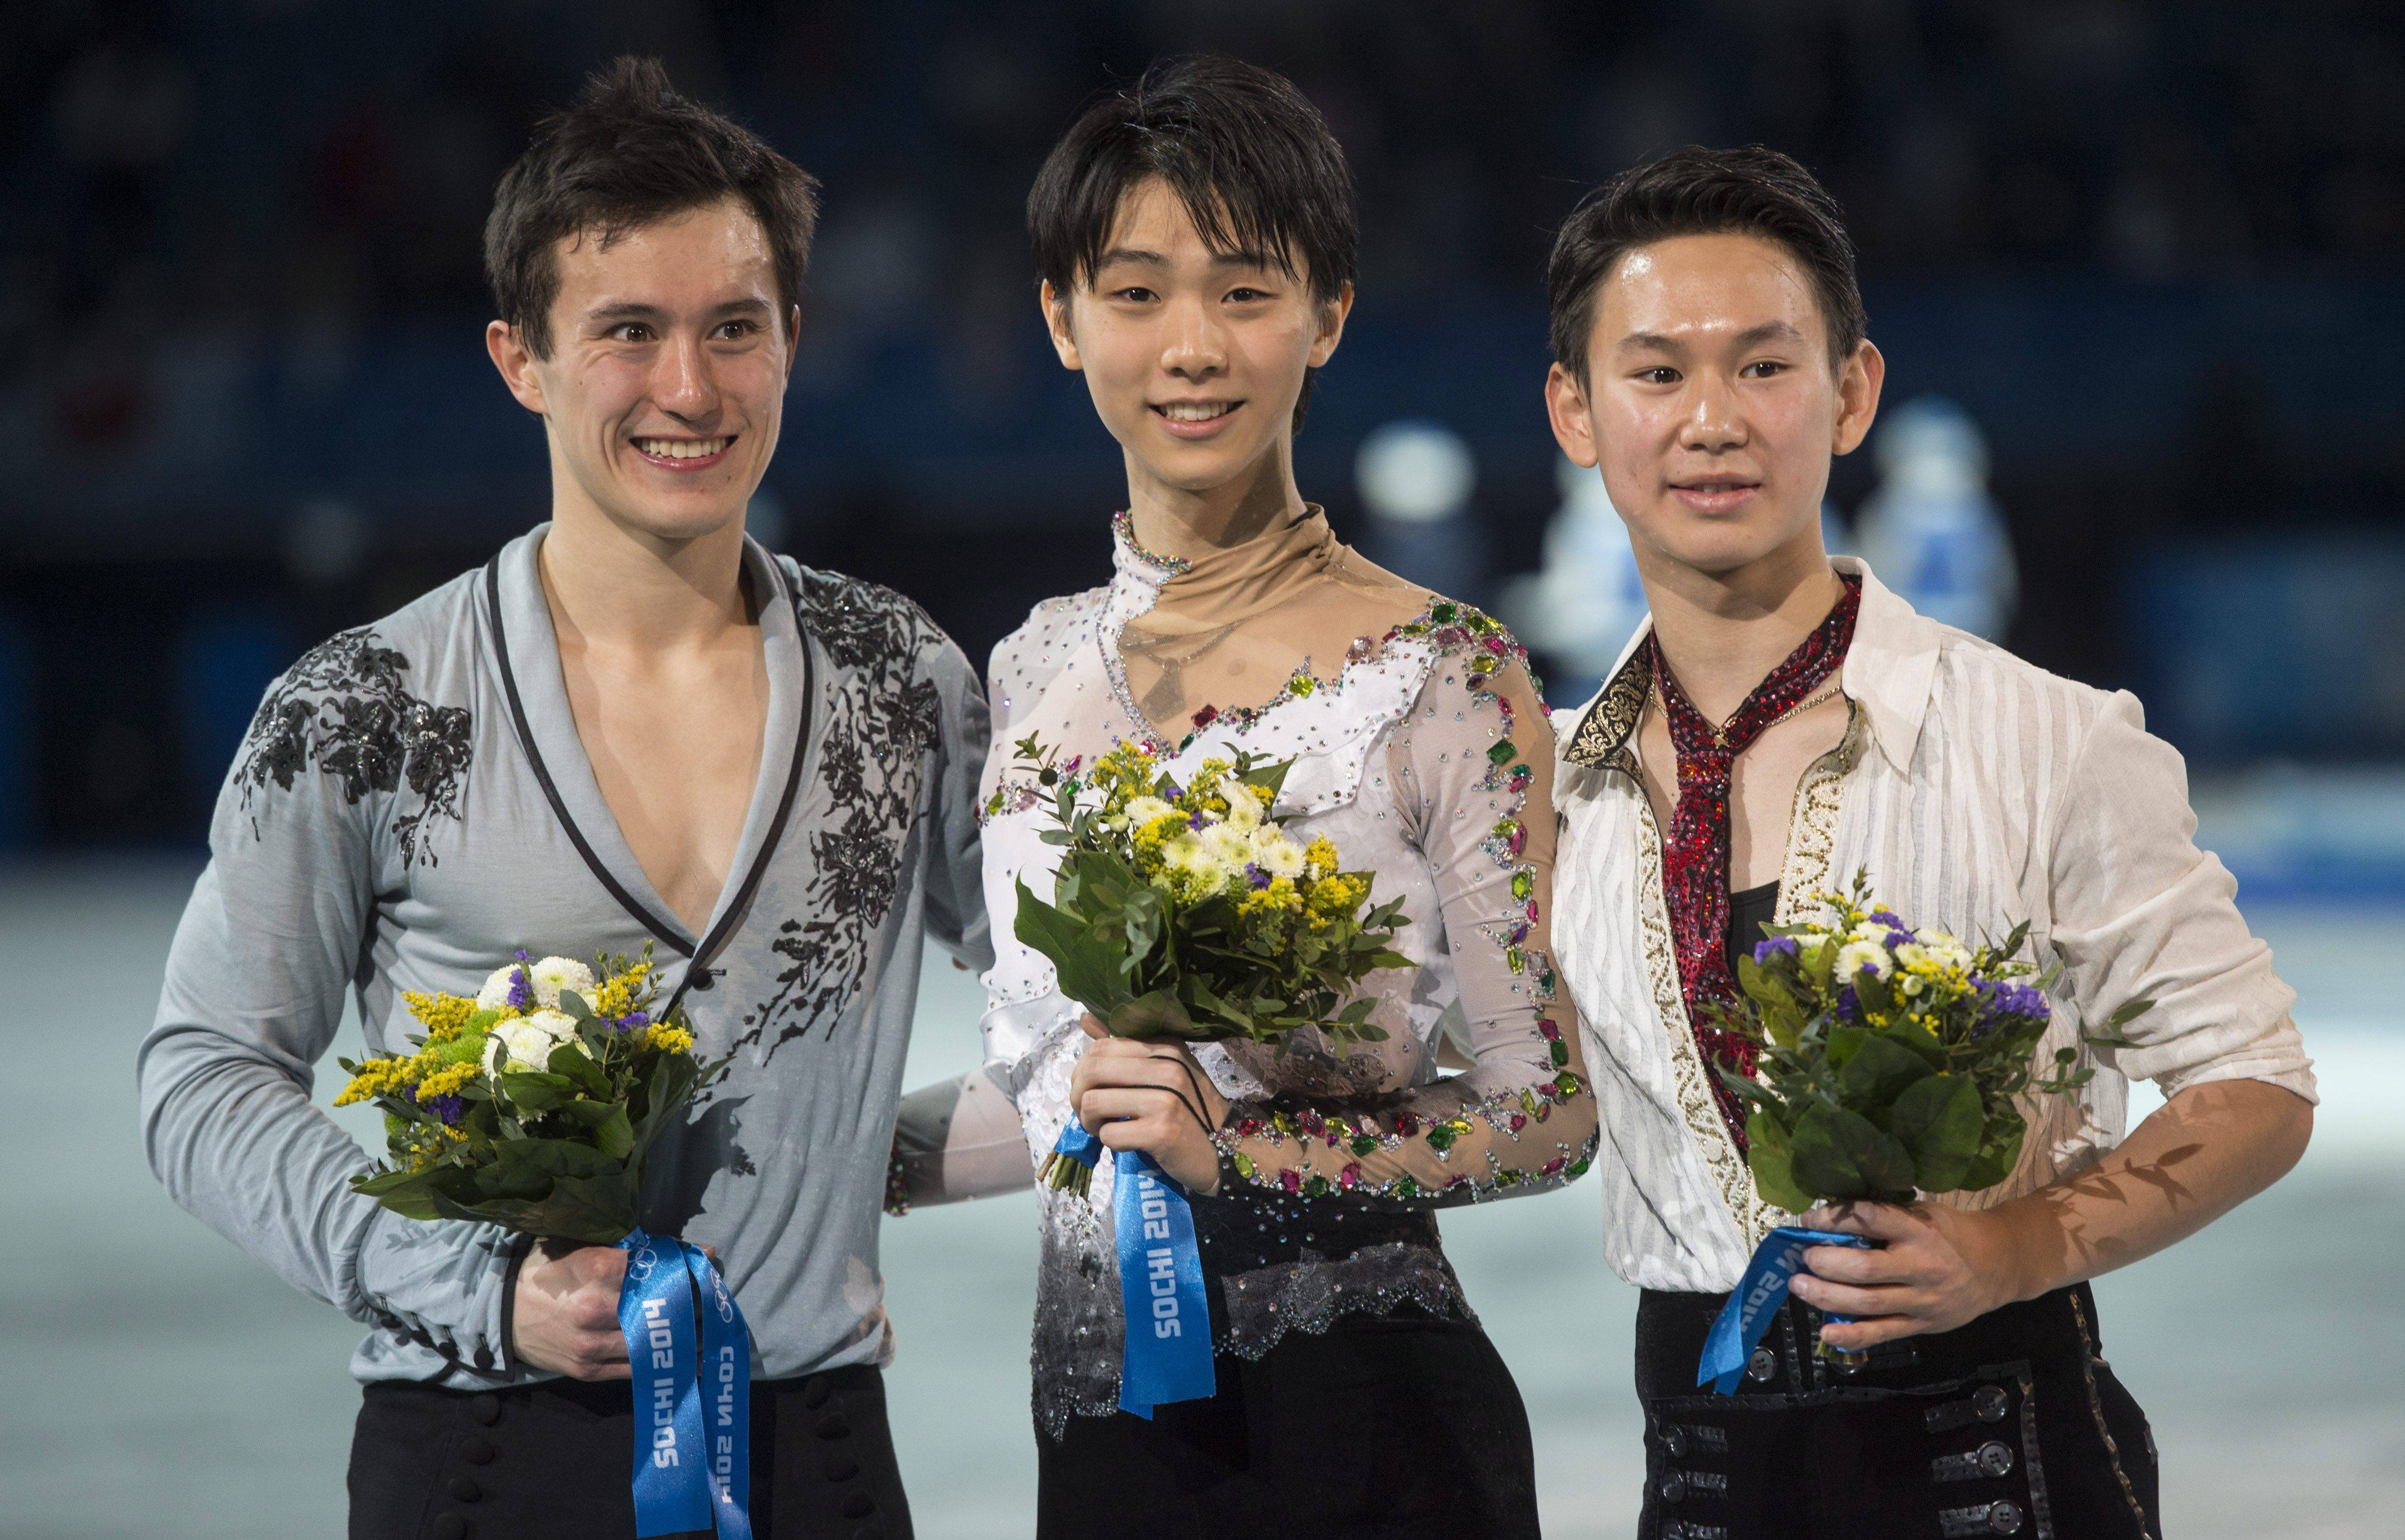 Gold medalist Yuzuru Hanyu of Japan, center, silver medalist Patrick Chan of Canada, left, and bronze medalist Denis Ten of Kazakhstan, pose for photographs on the podium during the flower ceremony after the men's free skate figure skating final.